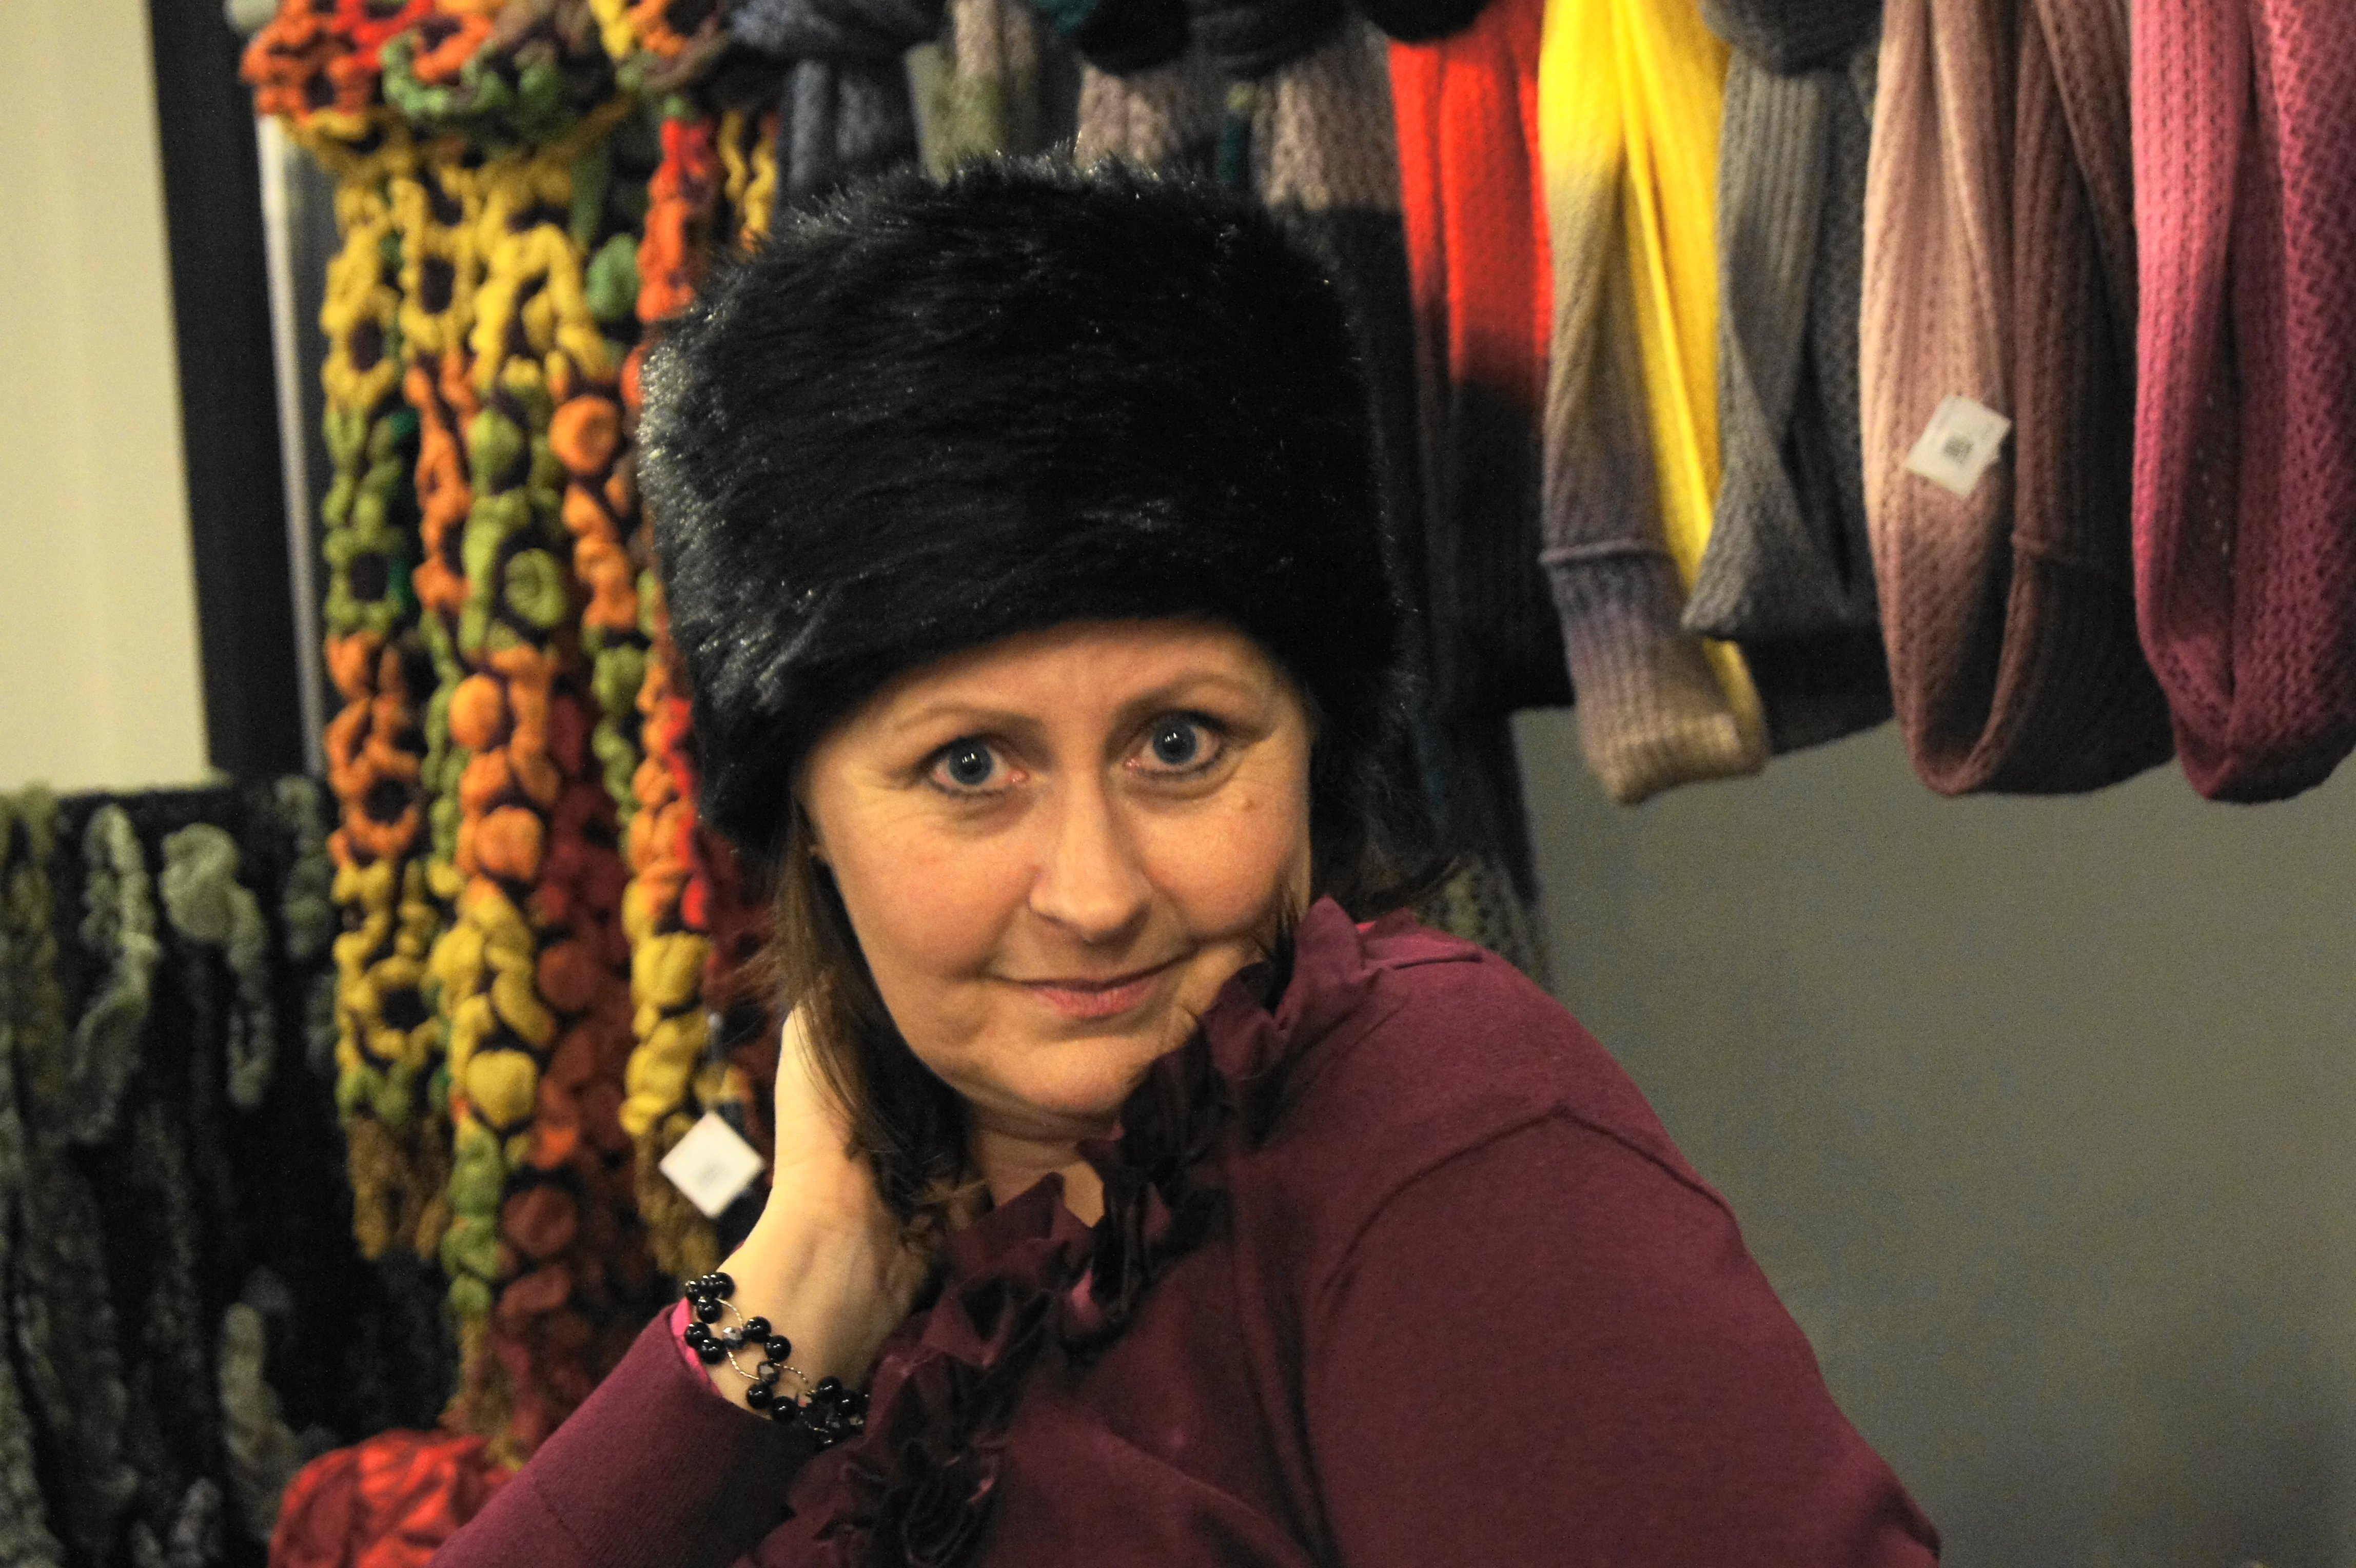 Rita rocked the mink-y hat at Dom itp